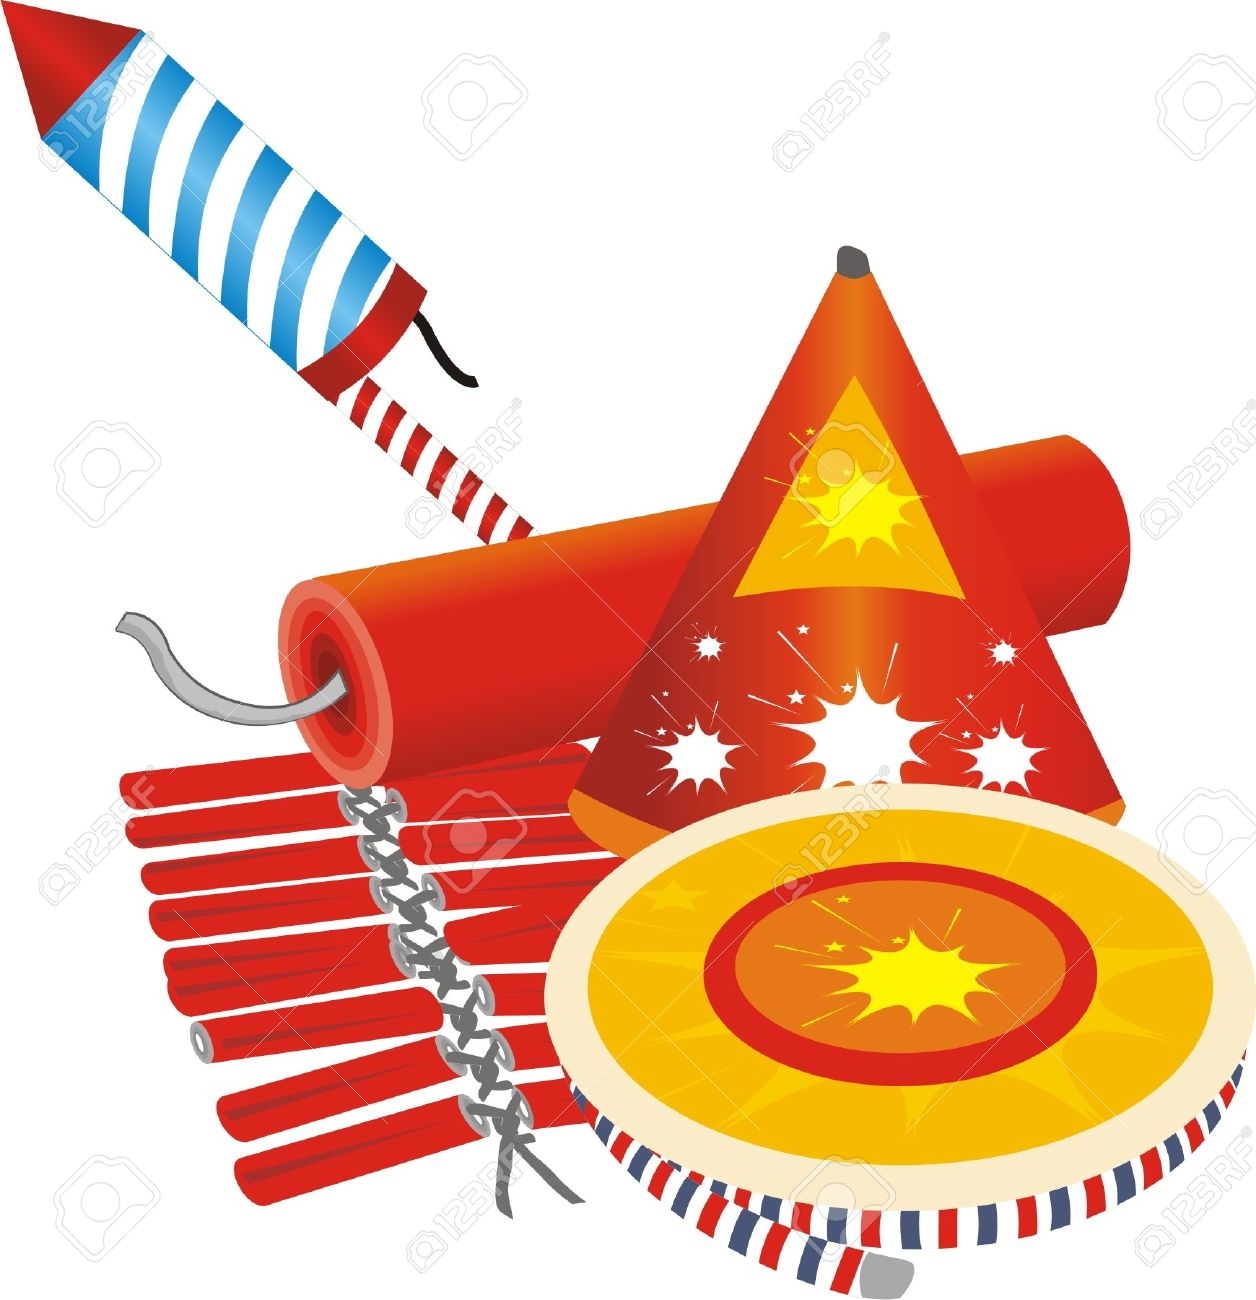 Diwali crackers clipart 5 » Clipart Station.